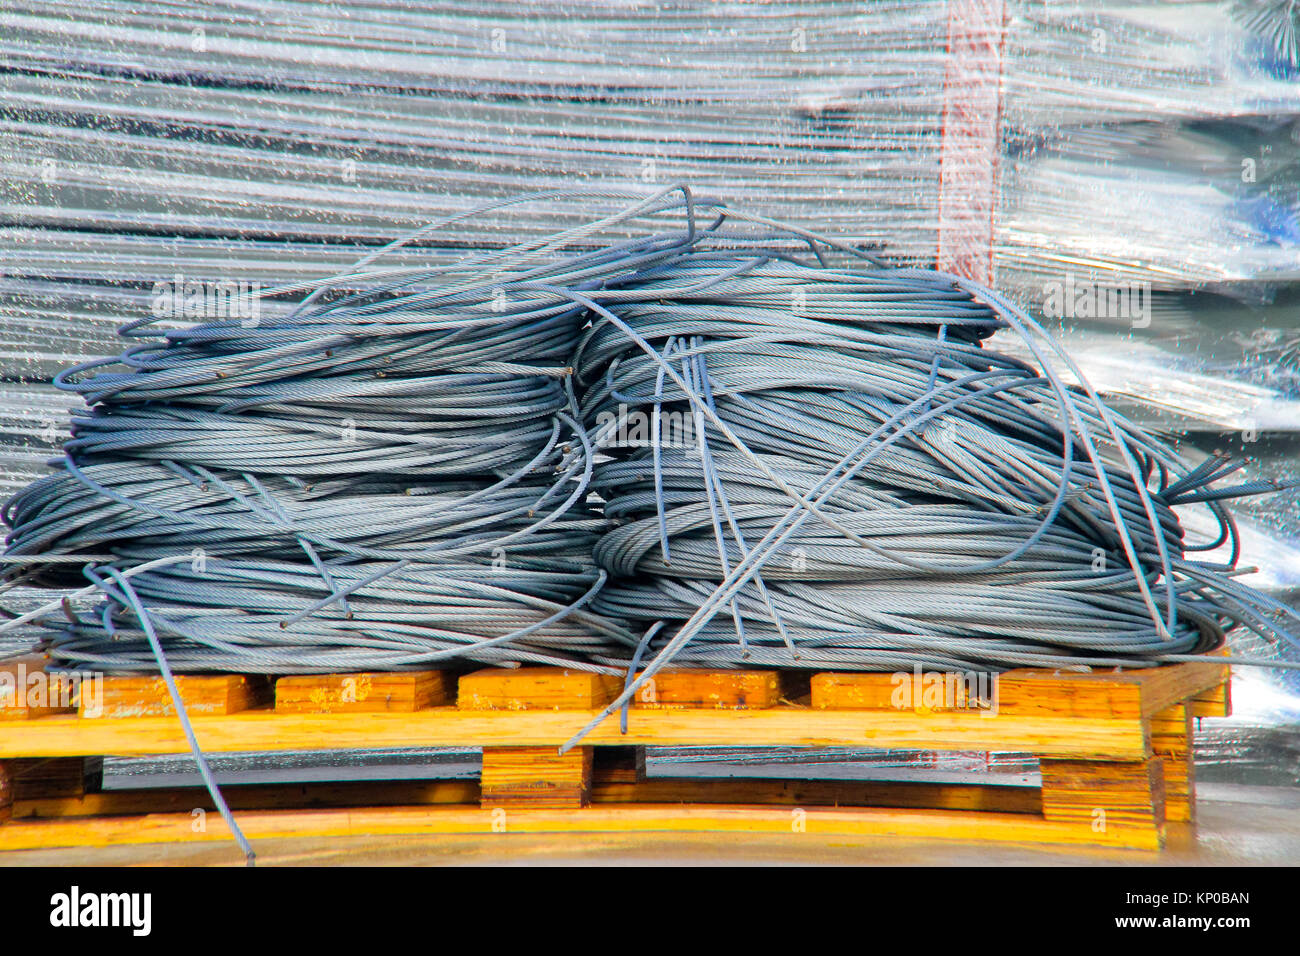 Braid Steel Cable Stock Photos & Braid Steel Cable Stock Images - Alamy